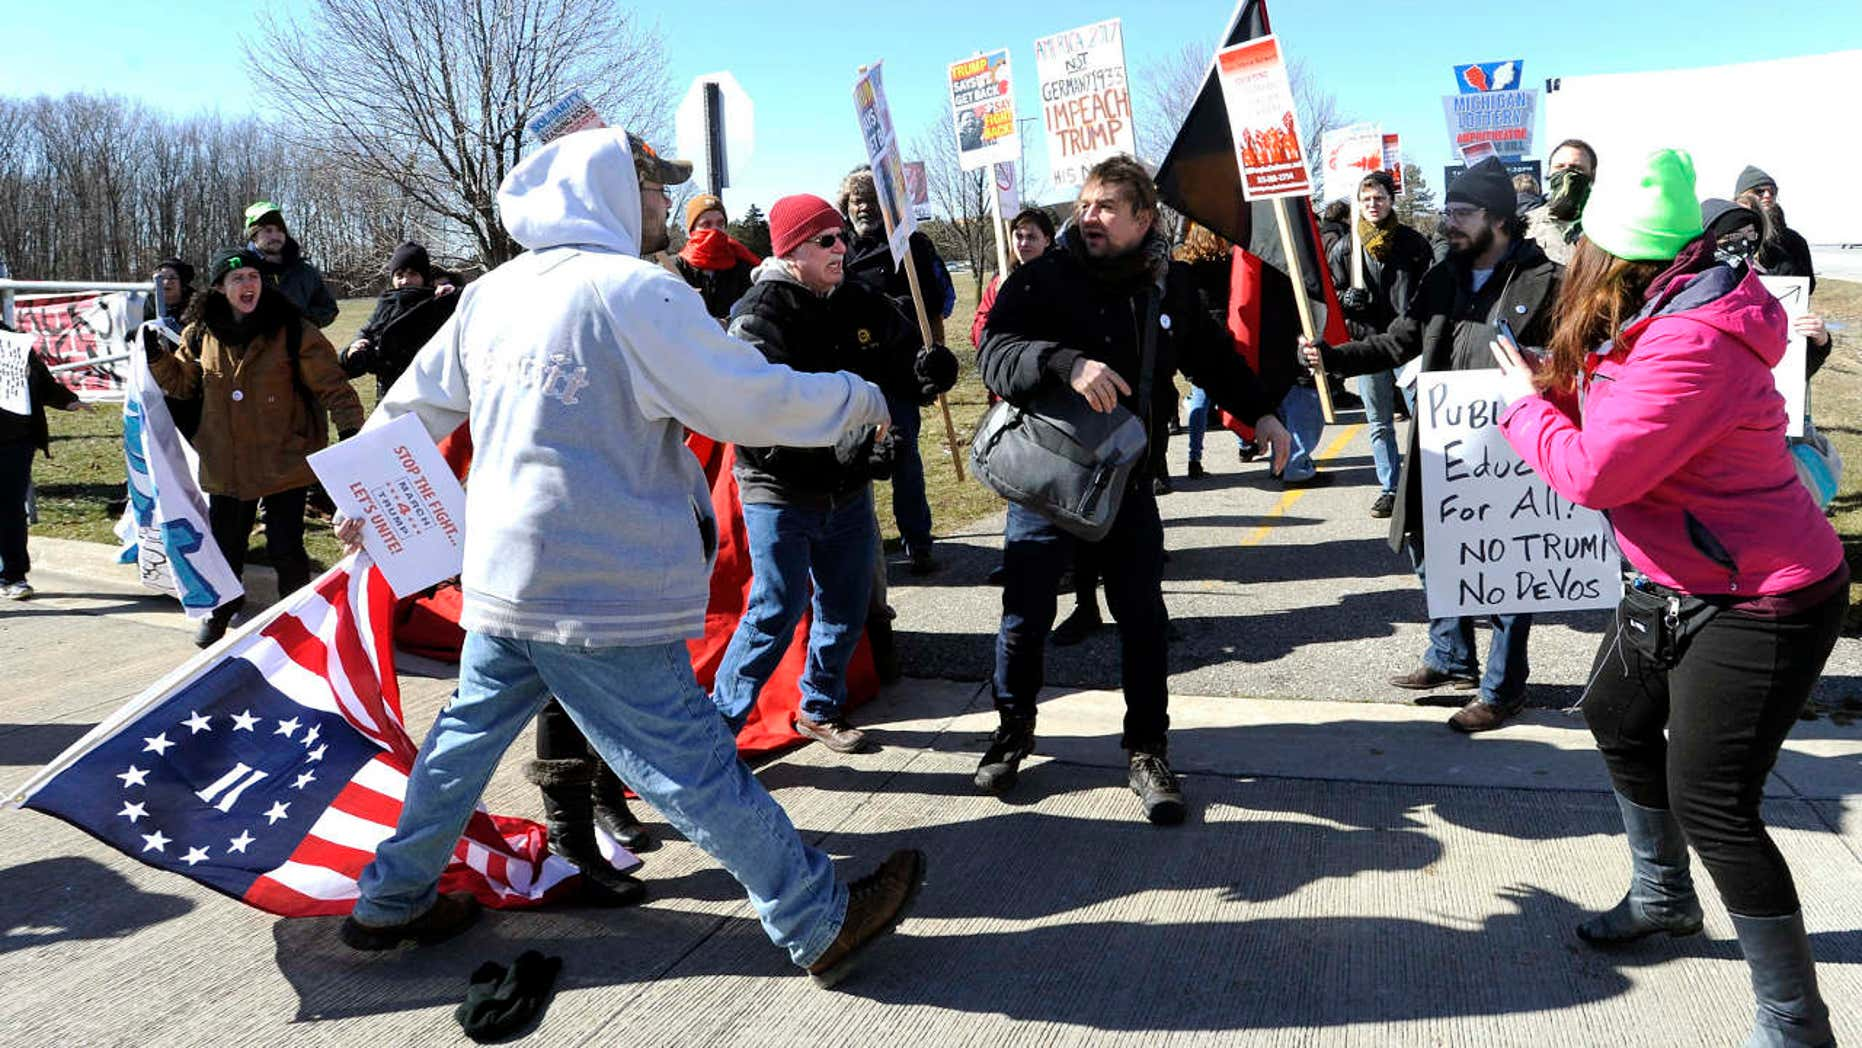 March 4, 2017: Trump supporters, left, and protestors, right, briefly push and shove each other after a woman was allegedly hit and a sign thrown on the ground during a rally in support of President Donald Trump at Freedom Hill County Park in Sterling Heights, Mich.